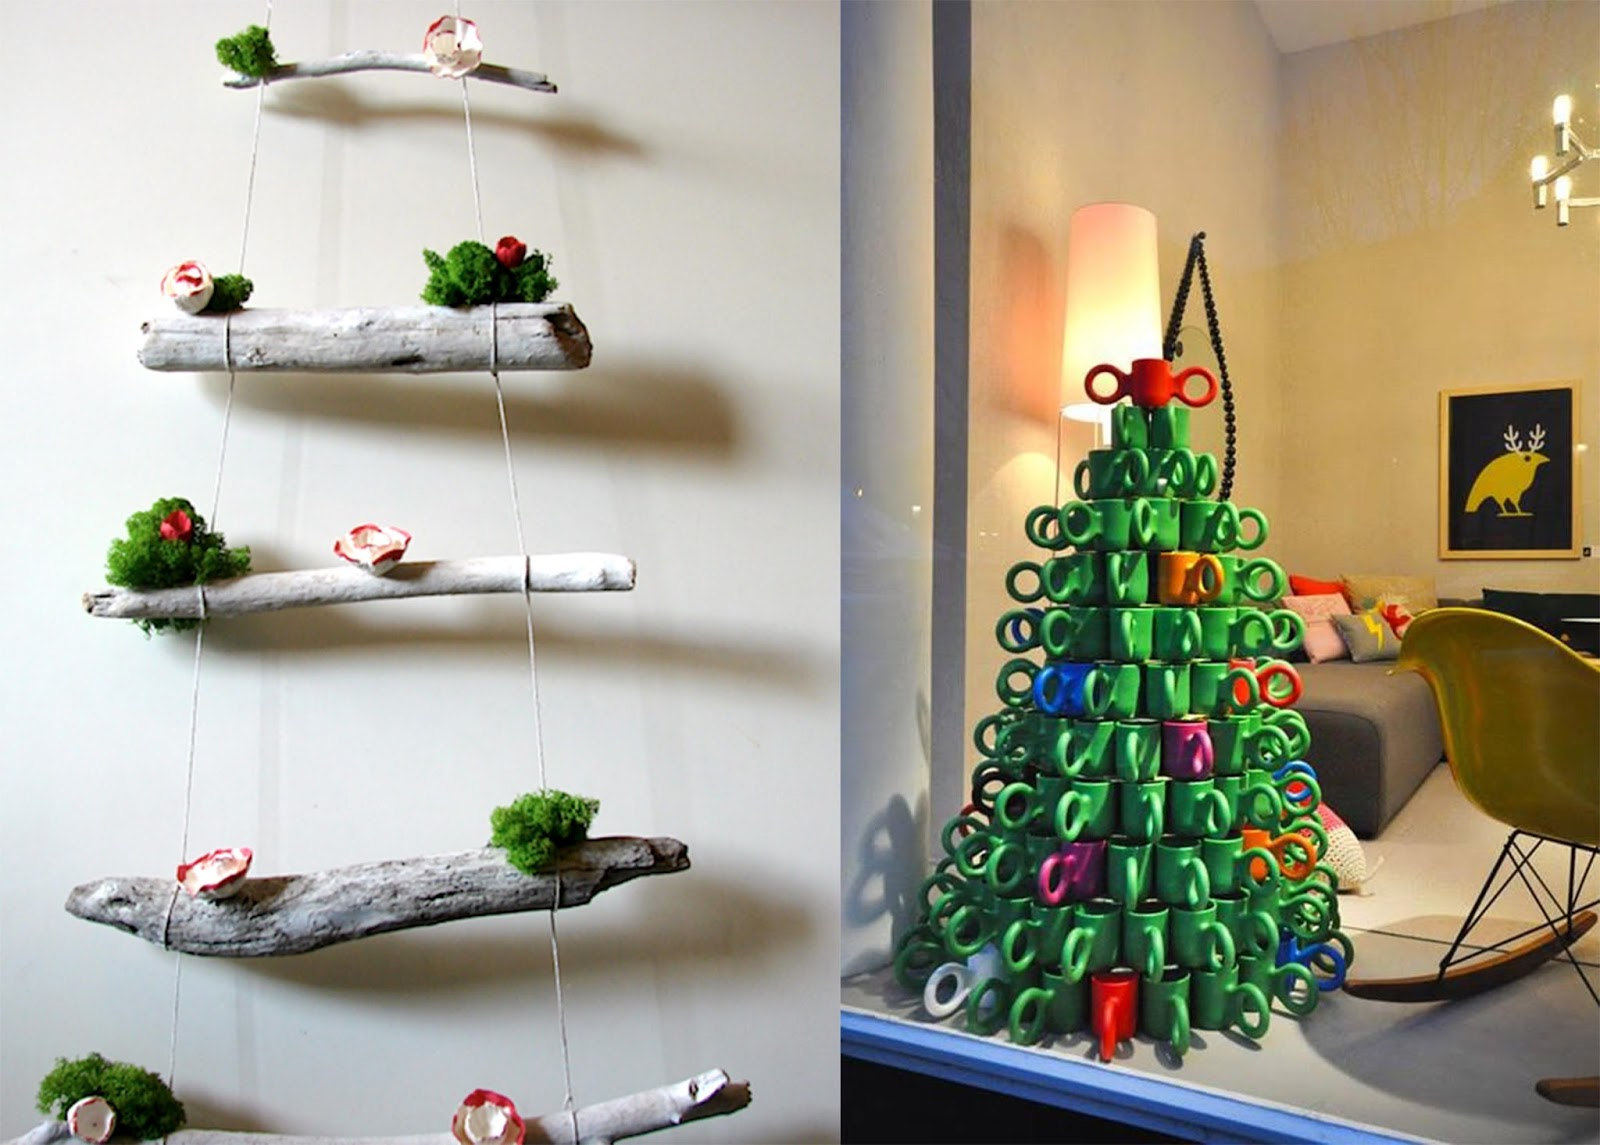 Idee originali per un natale creativo arc art blog by for Idee originali per arredare casa